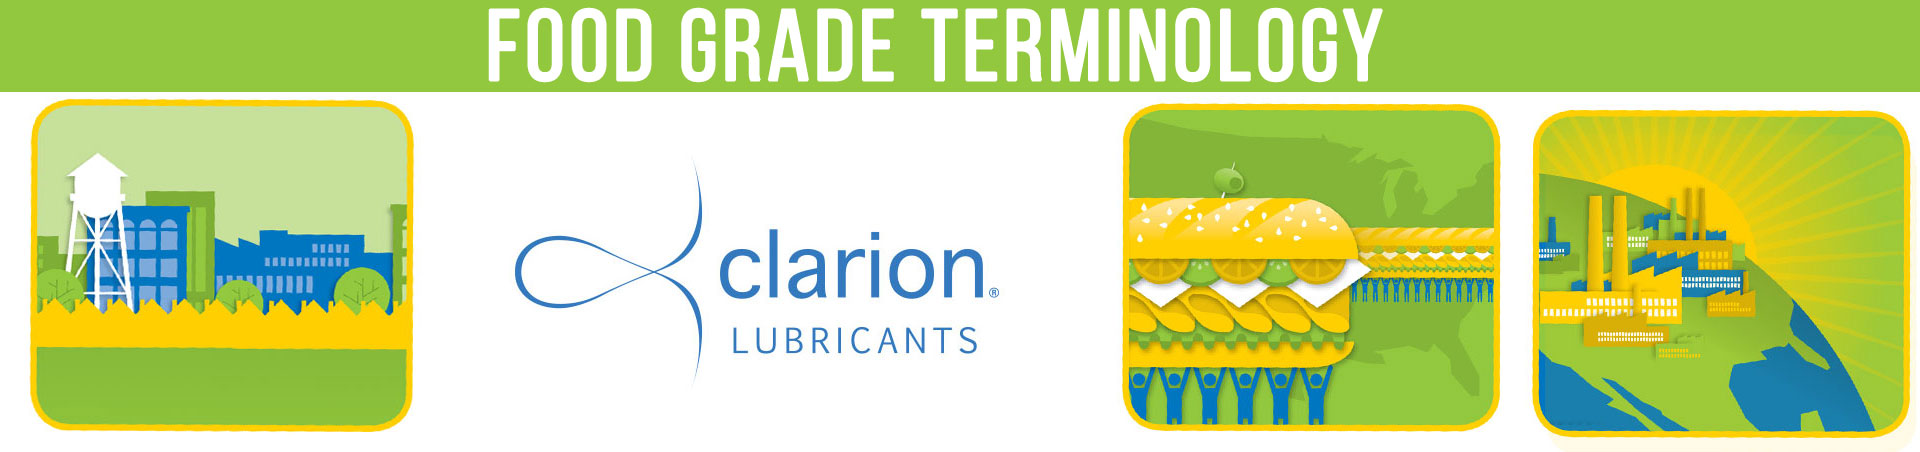 Food-Grade-Terminology-Clarion-Lubricants-Sutton-System-Sales